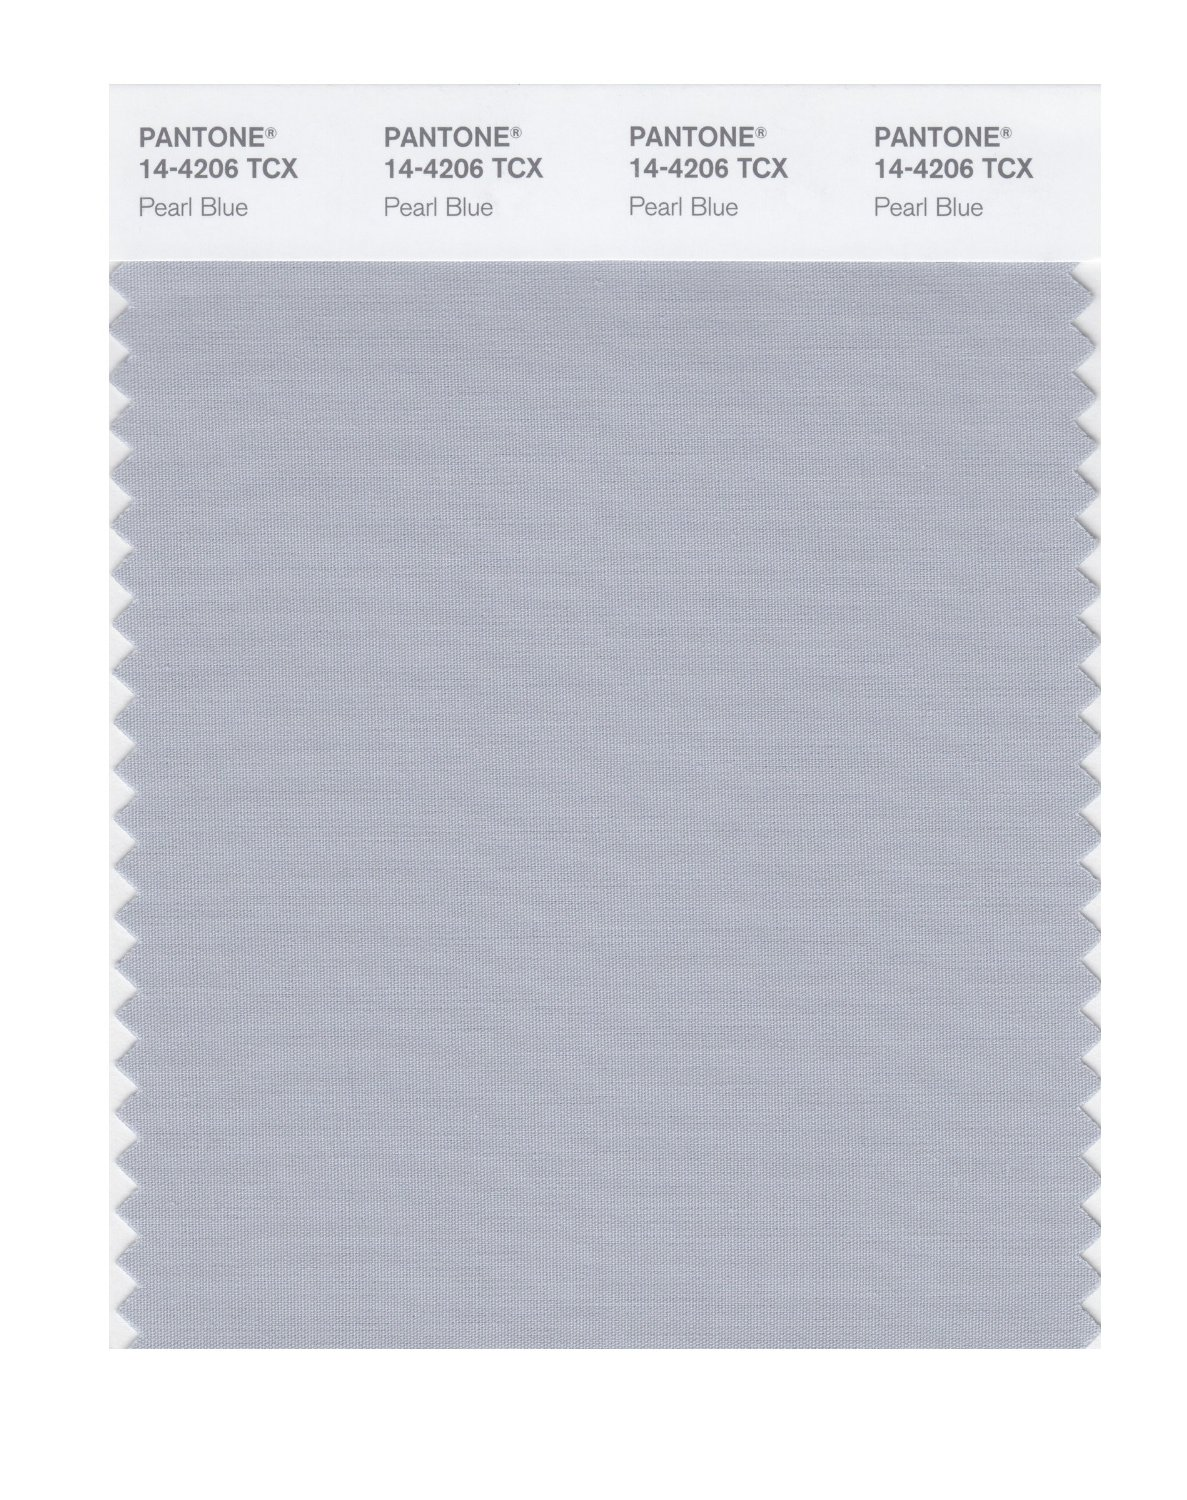 Pantone Smart Swatch 14-4206 Pearl Blue